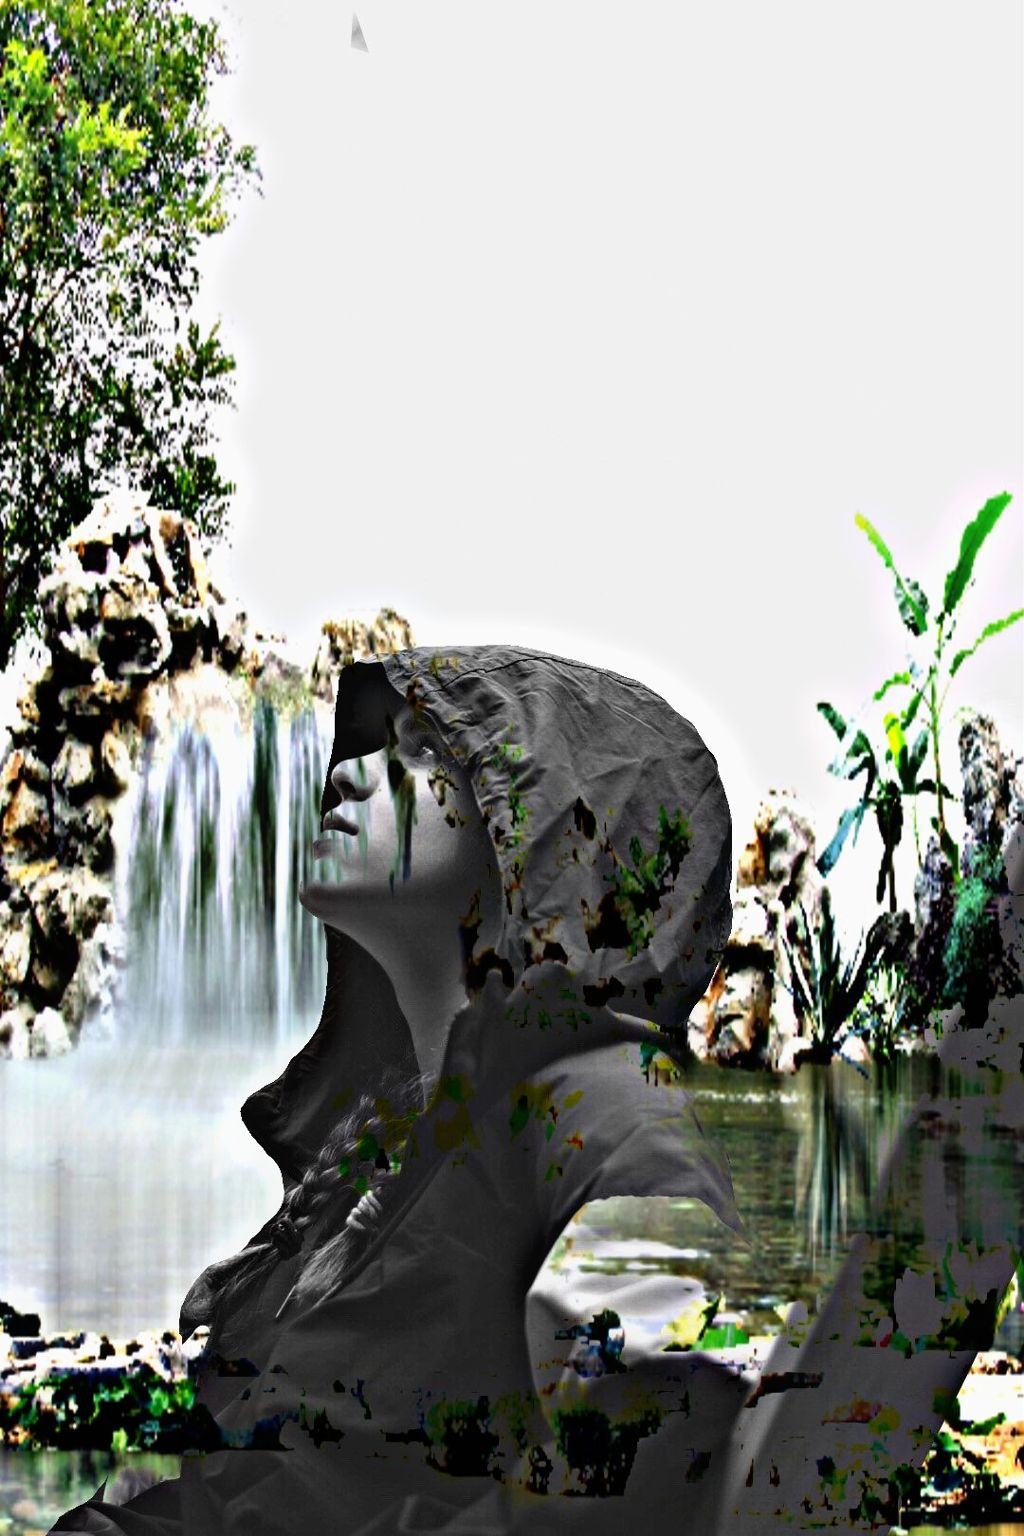 #freetoedit @aandreiaserra12 #andreiaserra12 #picture #fellings #moment #momment #felling #trumblr #tout #thinking #peace #greatful #cascate #water #green